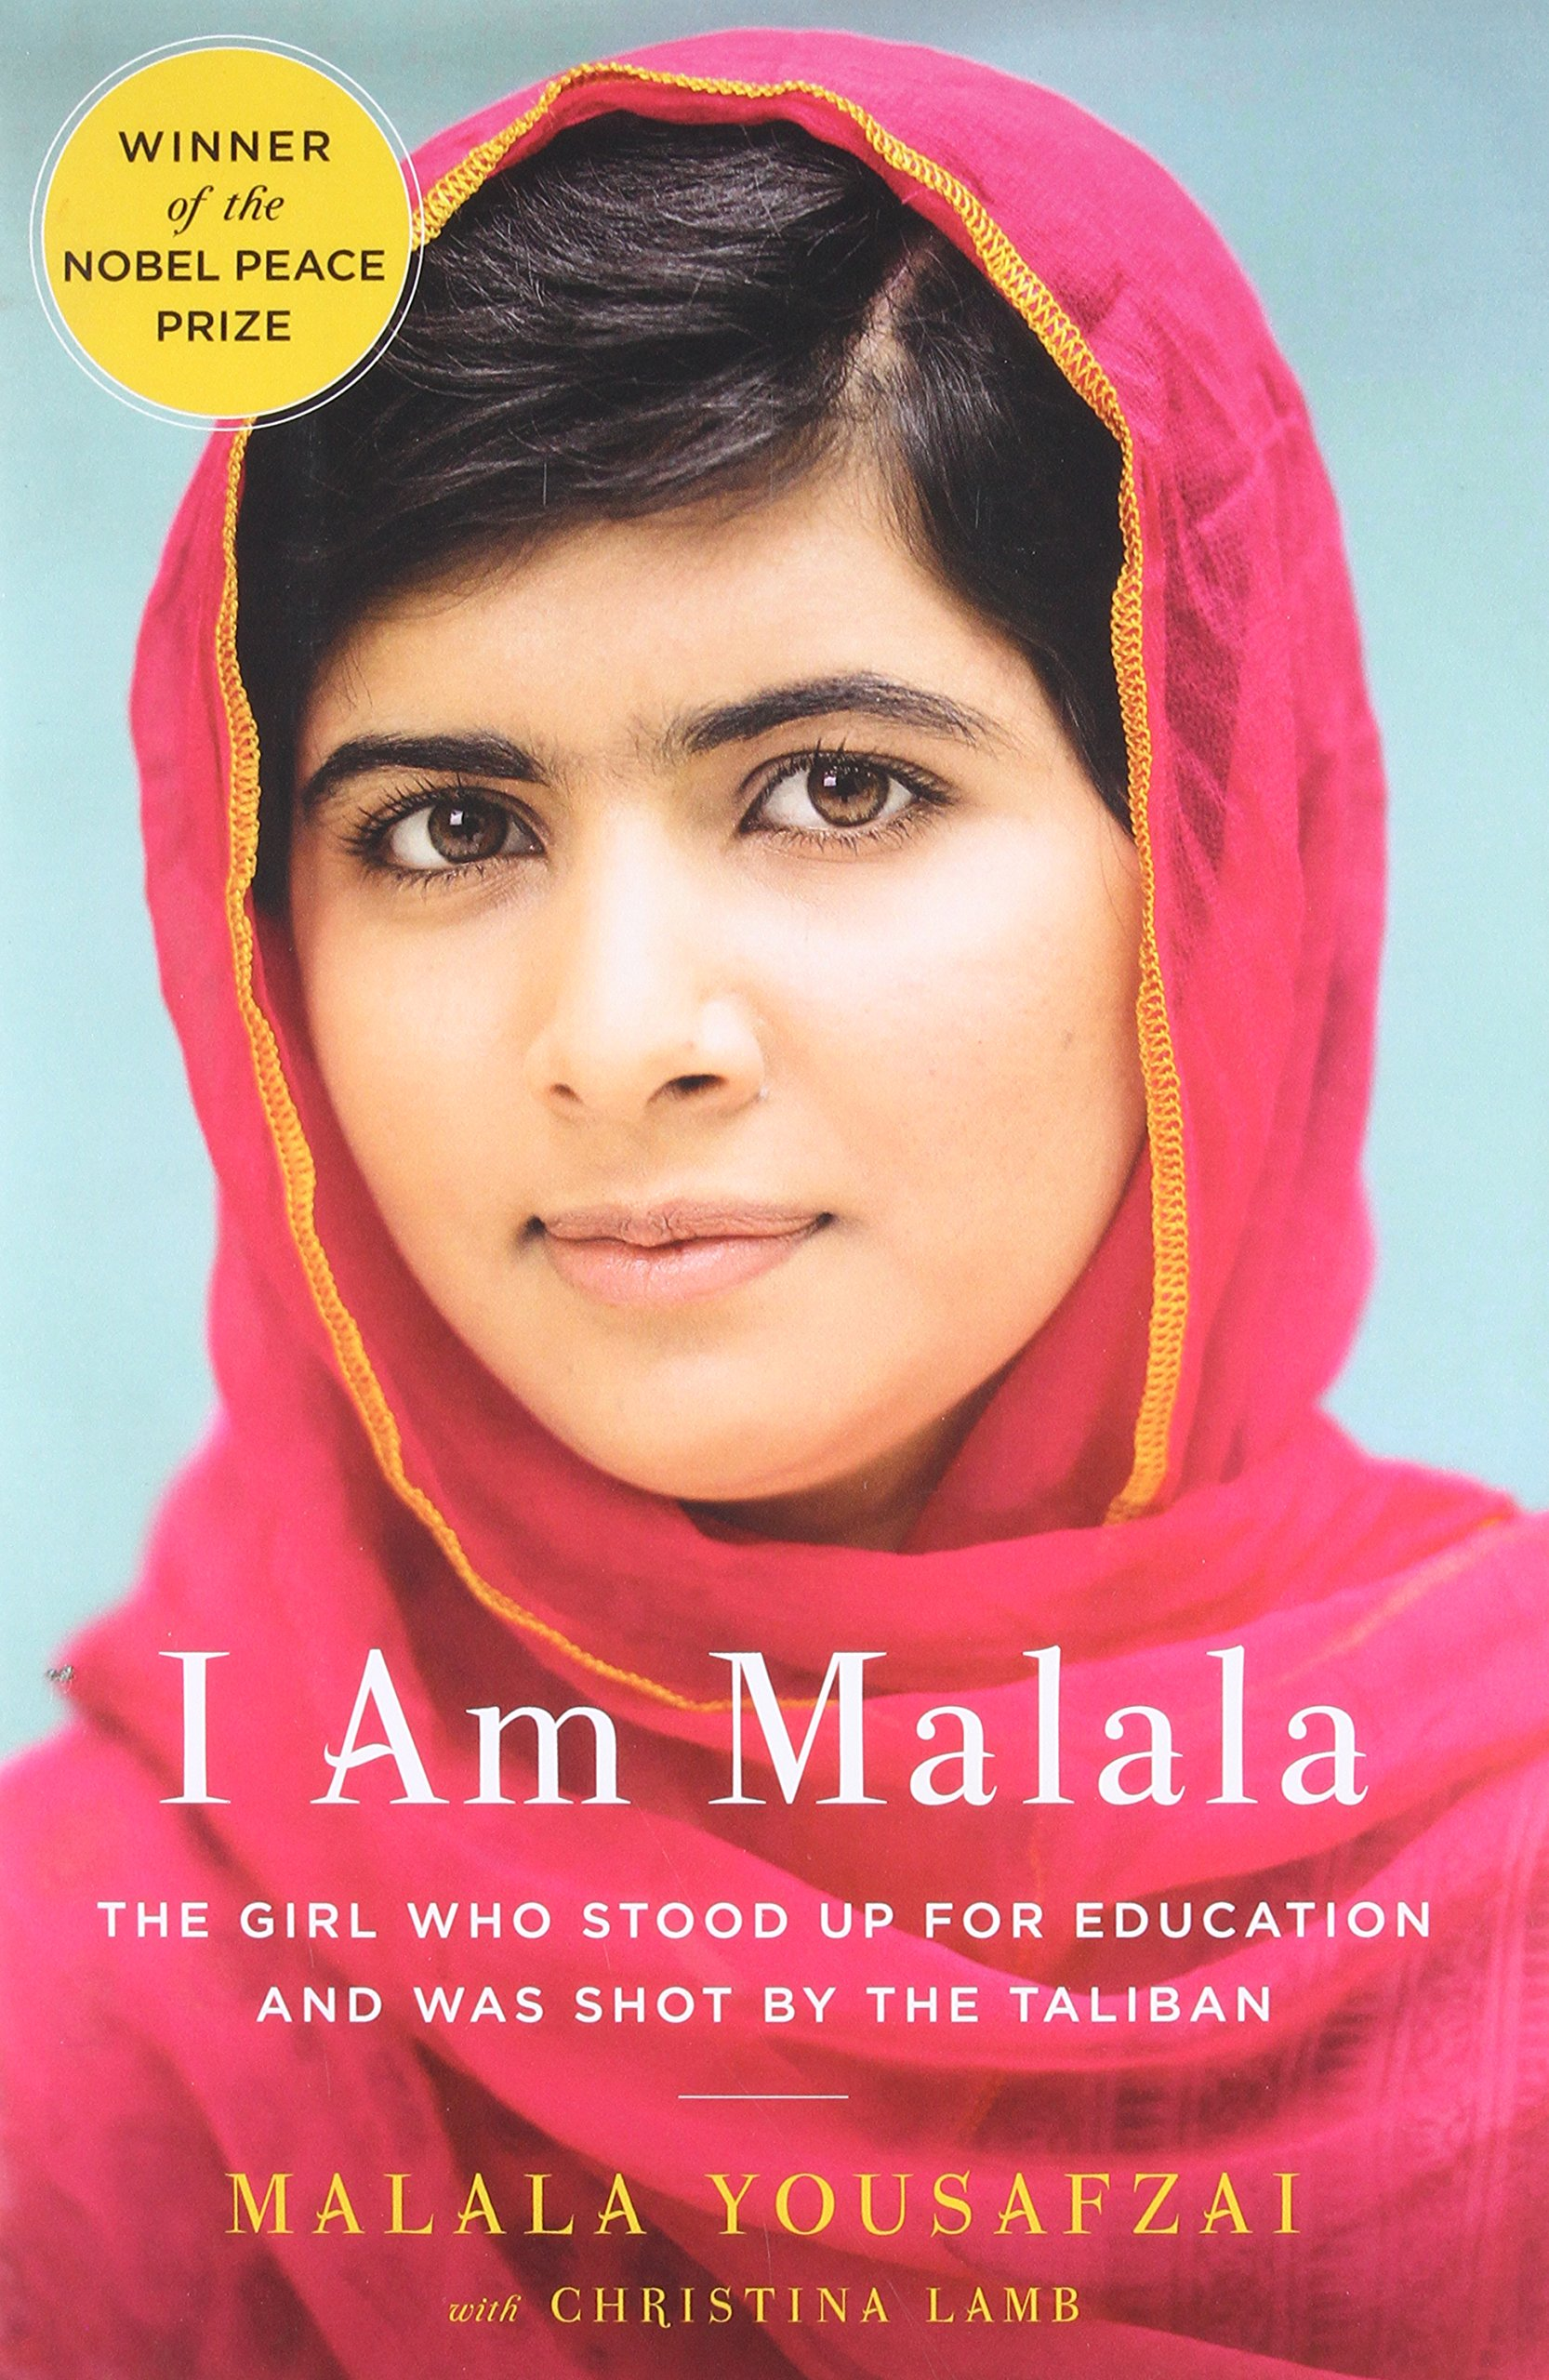 I Am Malala book cover.jpg